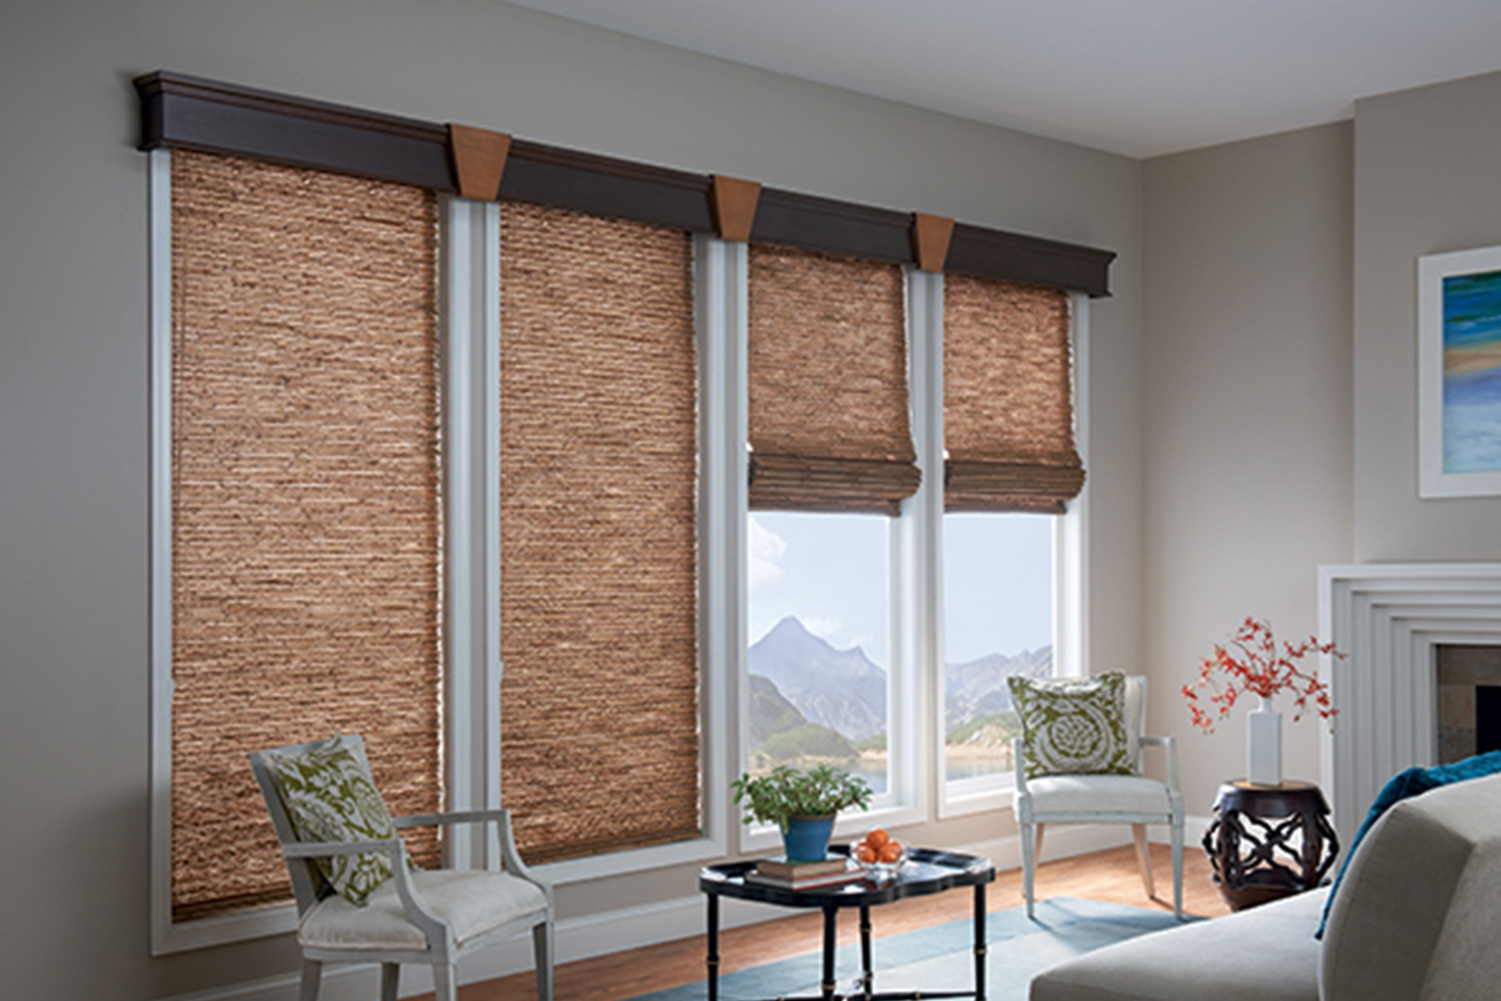 Fort Collins Roman Shades Window Shades The Blind Guy Intended For Custom Roman Blinds (Image 4 of 15)